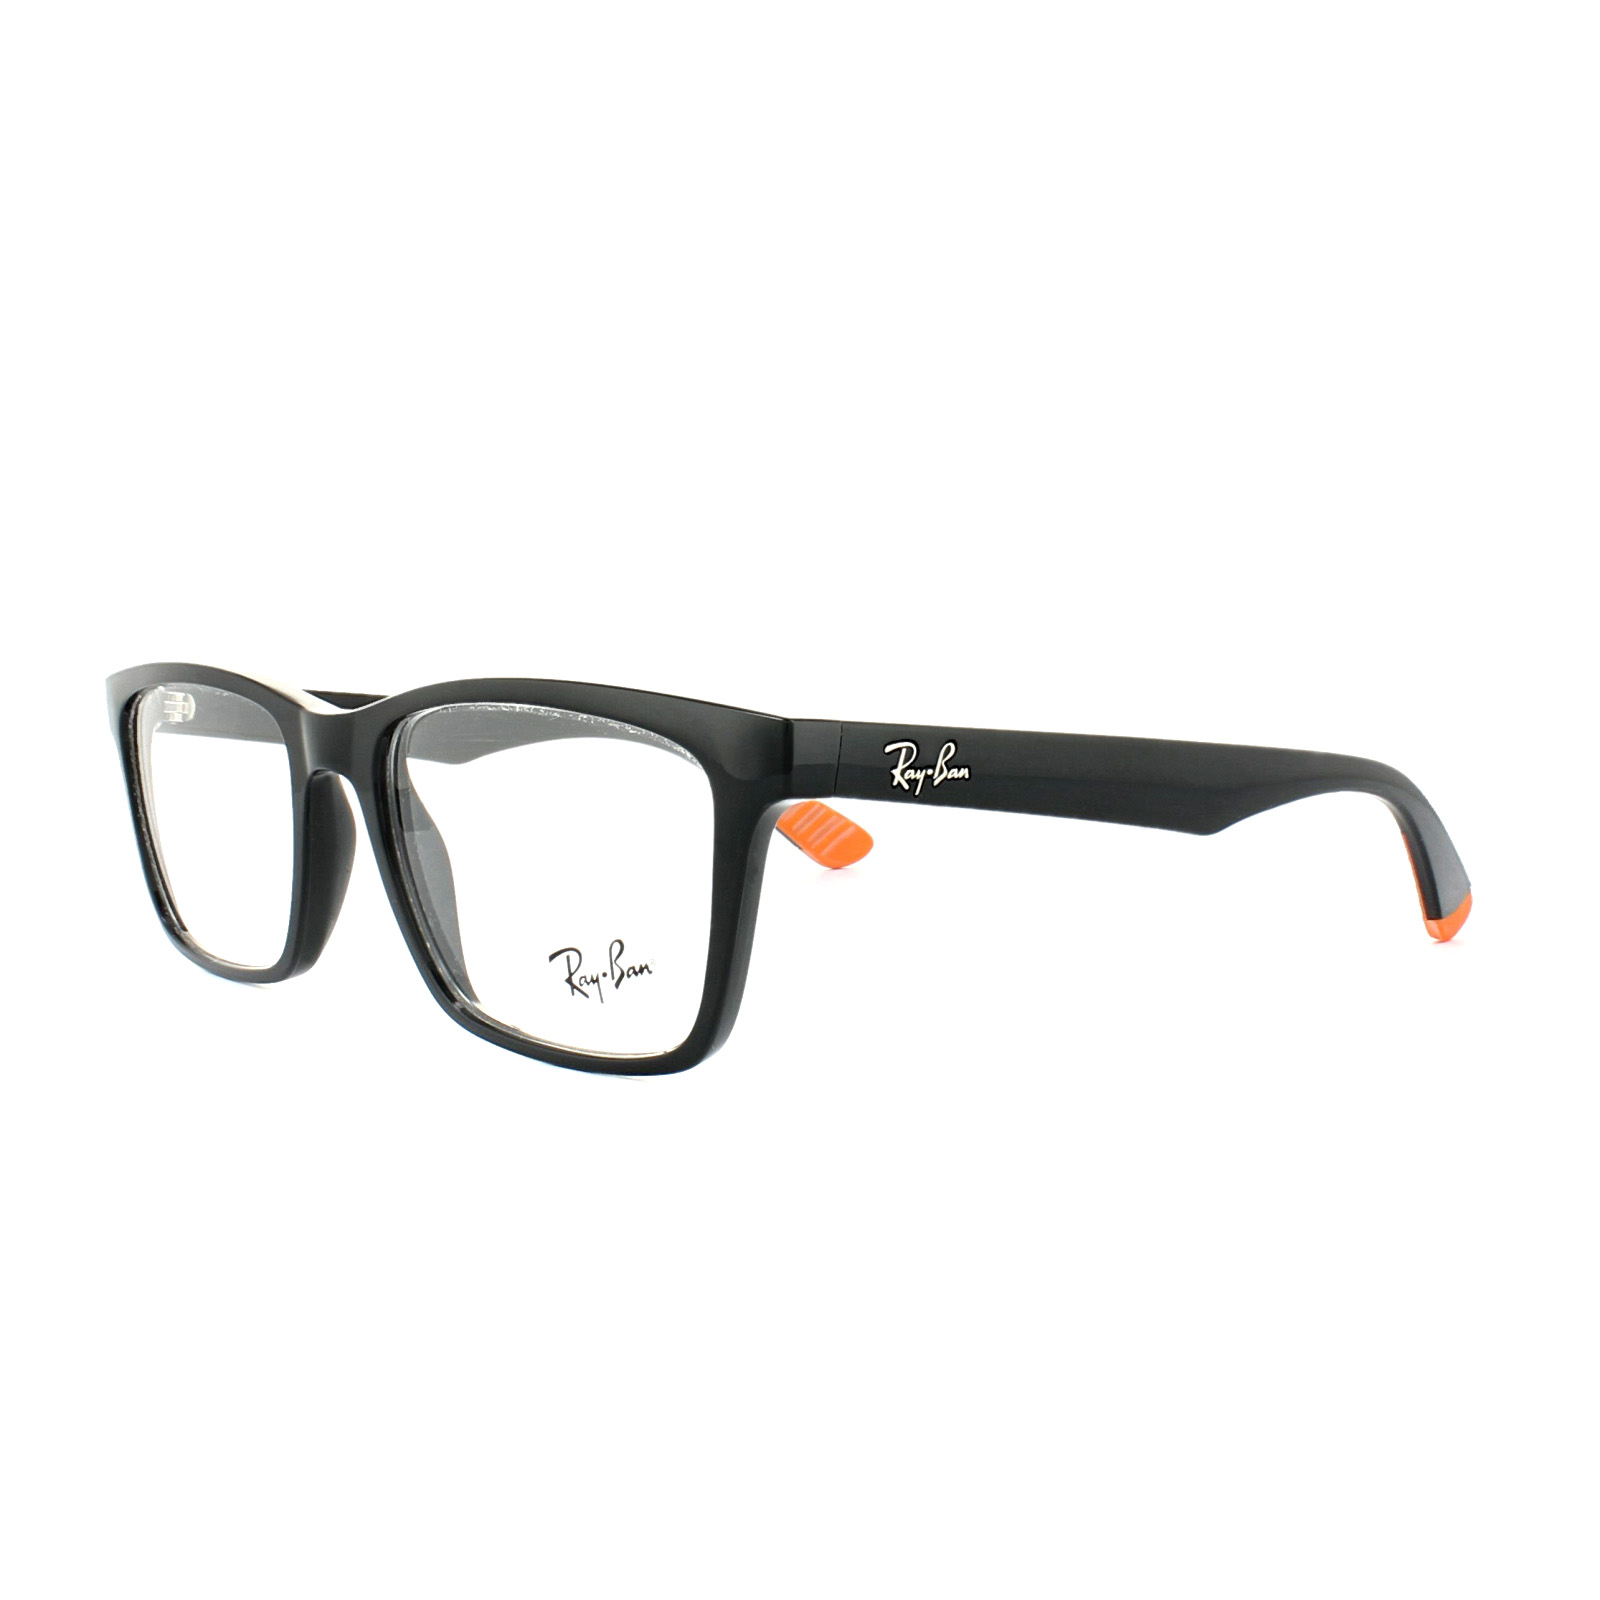 a83f619c4e Ray-Ban Glasses Frames 7025 5417 Black Mens 53mm 8053672243987